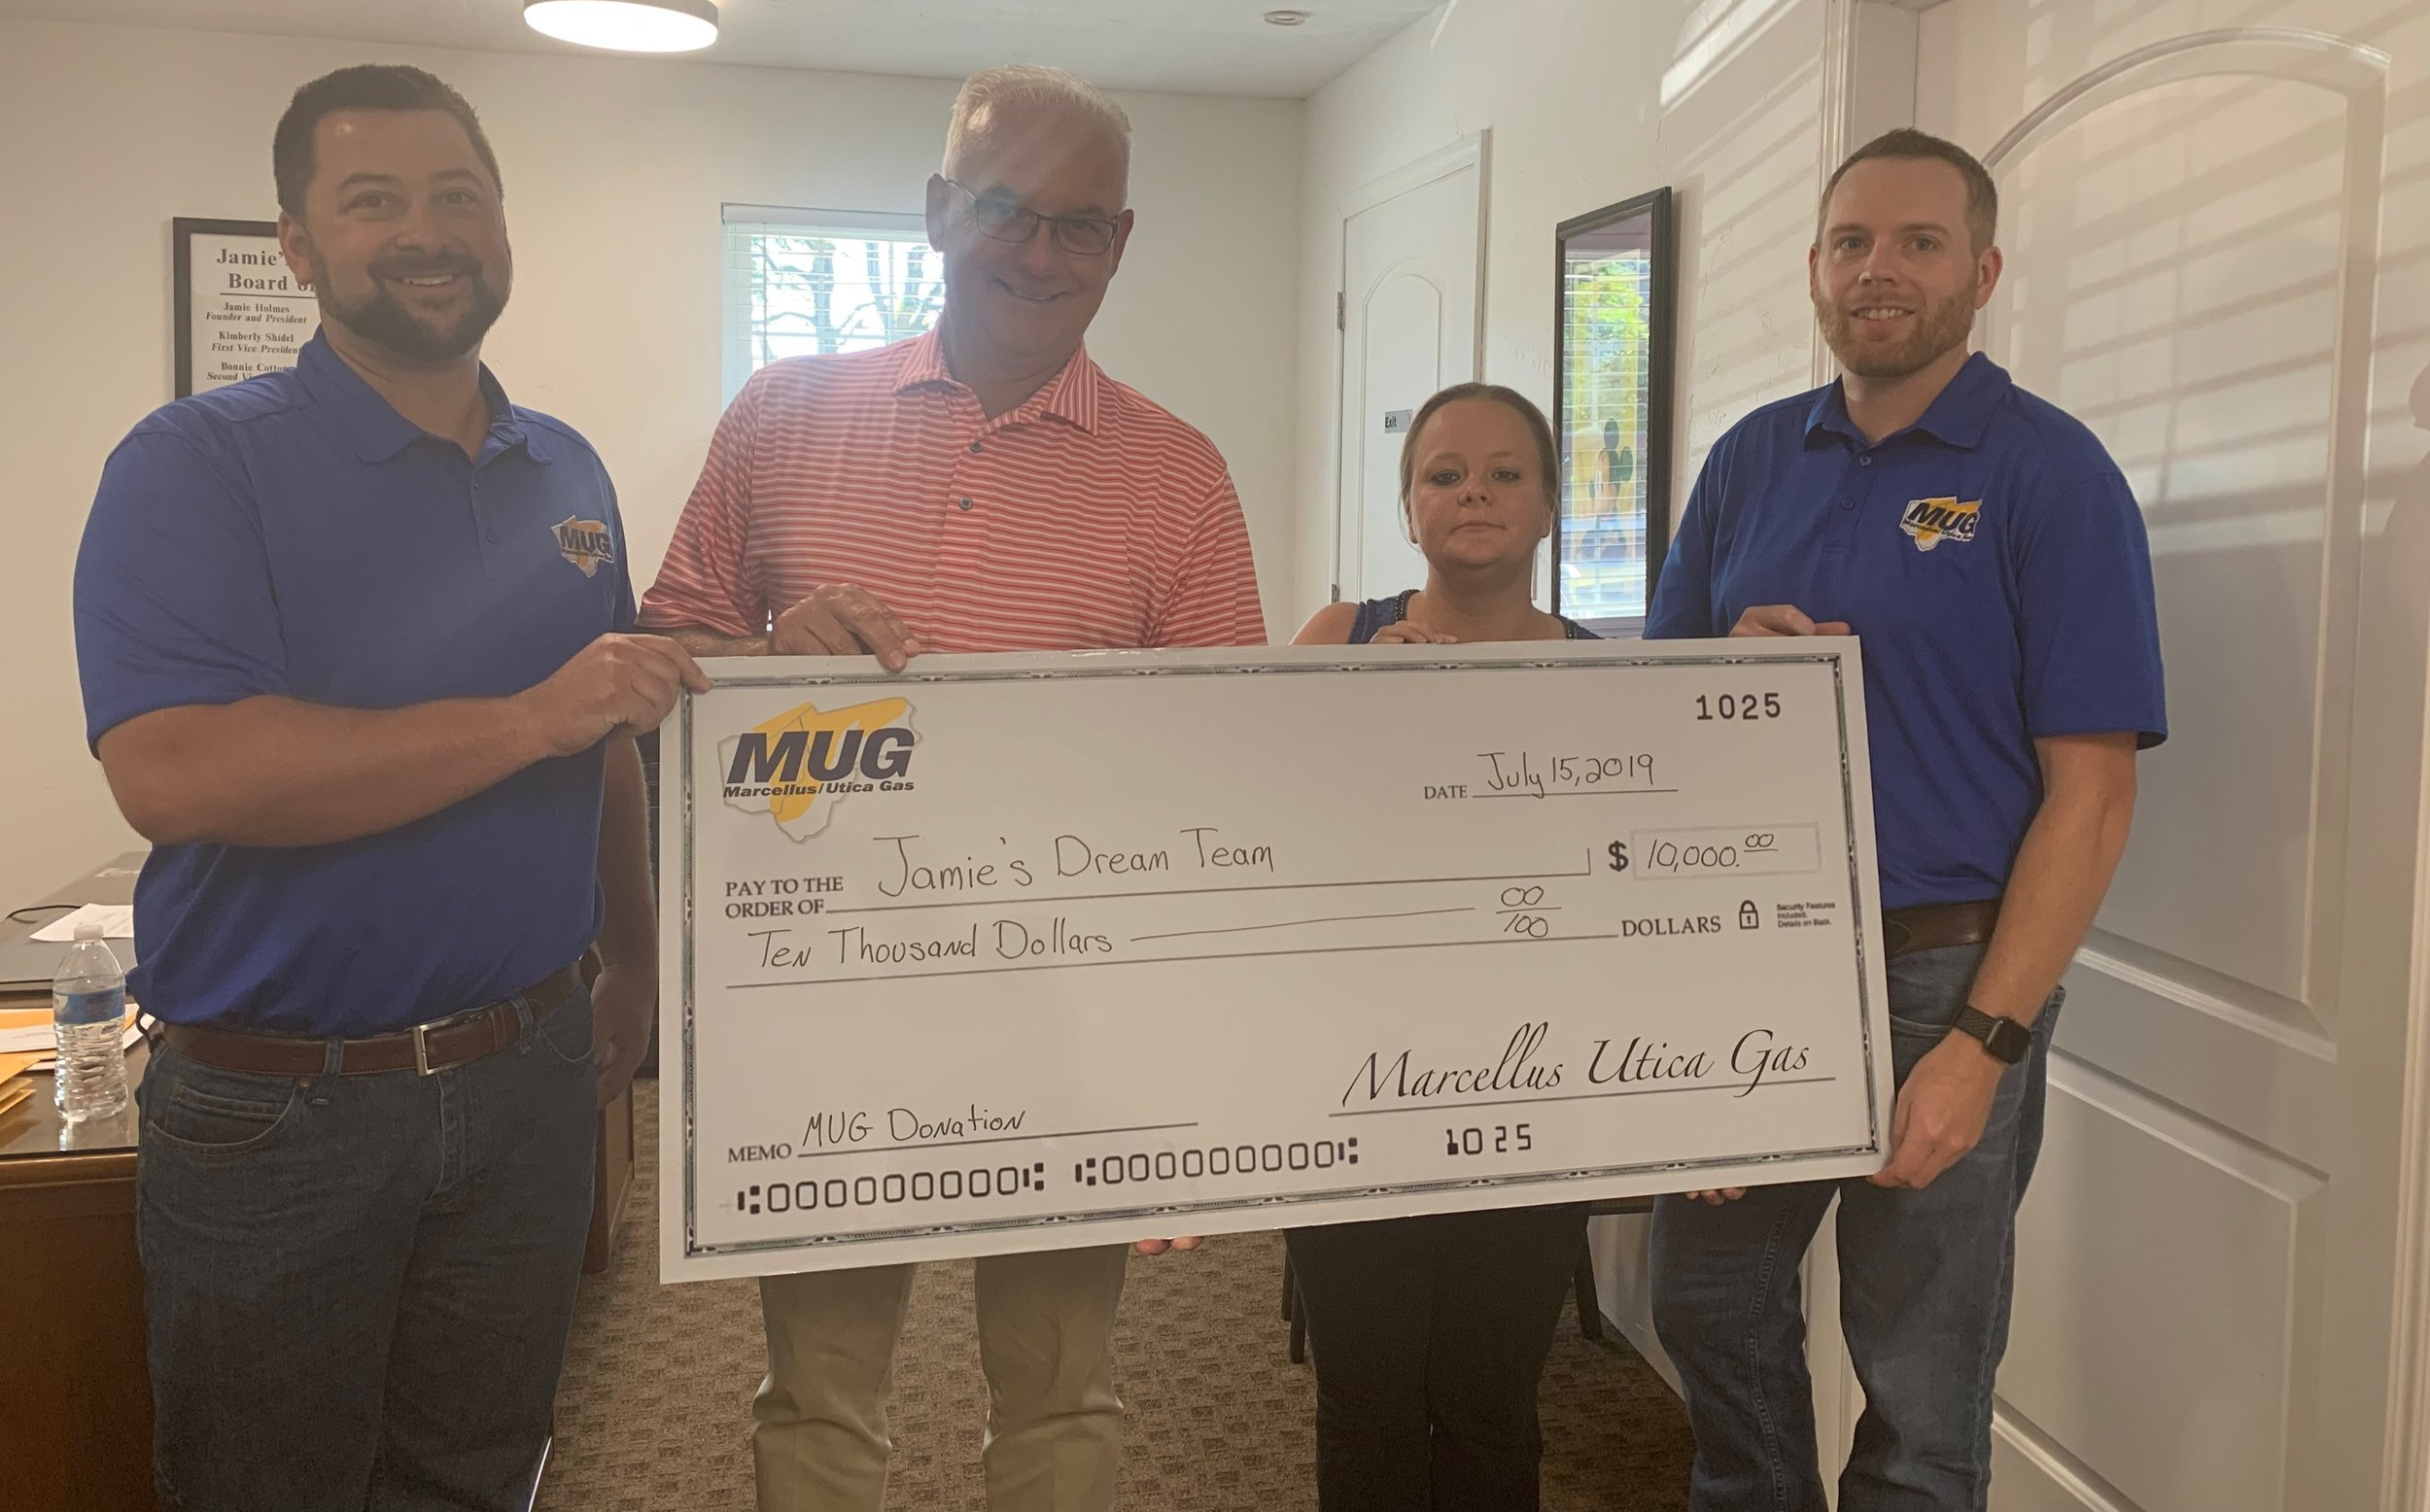 The Marcellus & Utica Gas Suppliers, Services, and Manufacturers Association present a check to Jamie's Dream Team. Pictured left to right: Zane Johnson (Sooner Pipe), Tom Smith (Edgen Murray), Jamie Holmes Ward (Jamie's Dream Team), and Chris LaBarte (US Well Services).